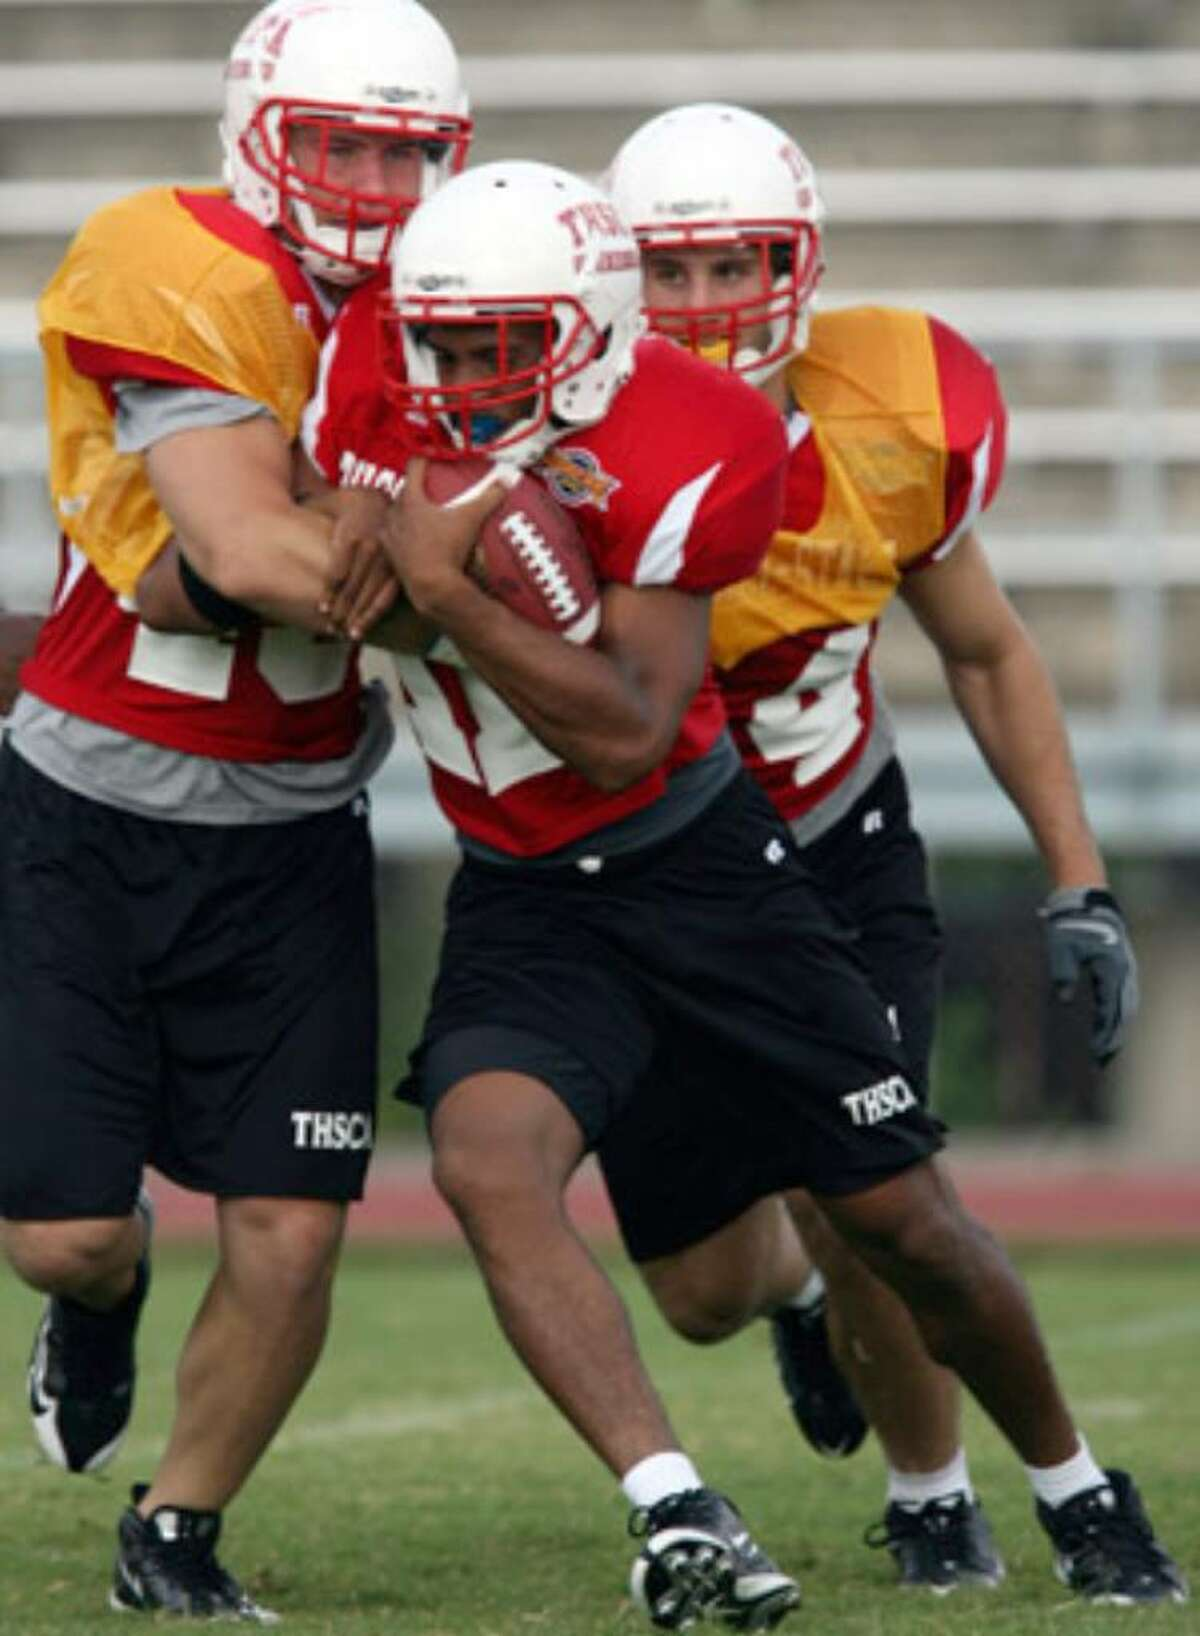 Former Wagner running back David Glasco (center) takes part in Monday's practice for the THSCA all-star football game.